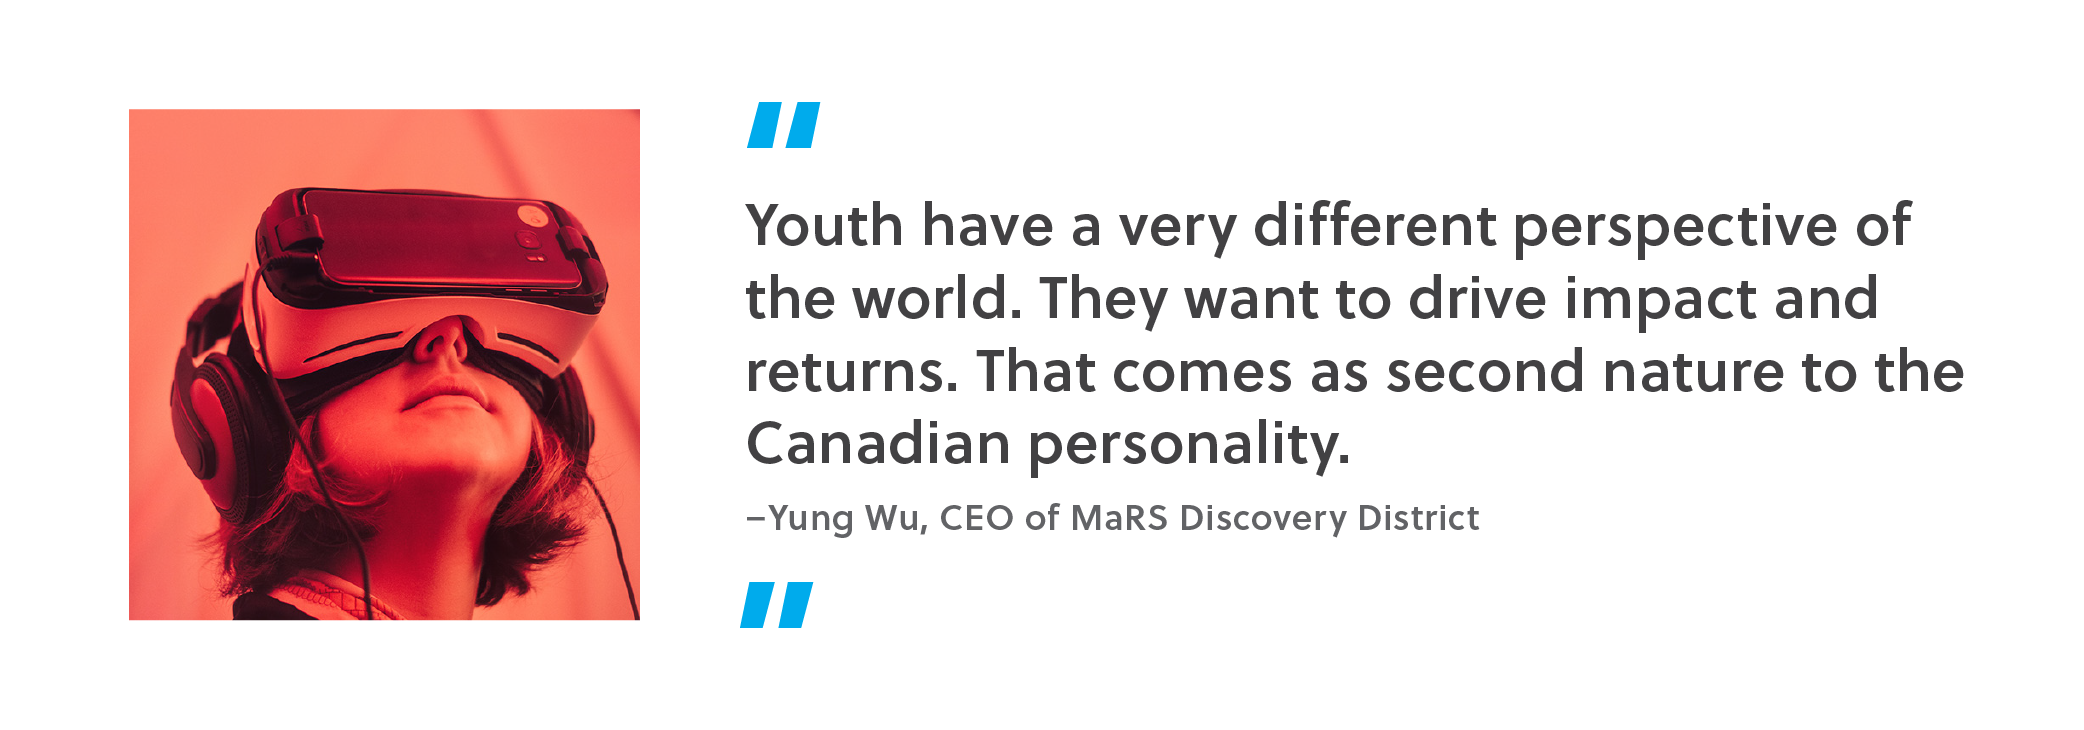 """Quote. """"Youth have a very different perspective of the world. They want to drive impact and returns. That comes as second nature to the Canadian personality. Unquote. Yung Wu, CEO of MaRS Discovery District."""